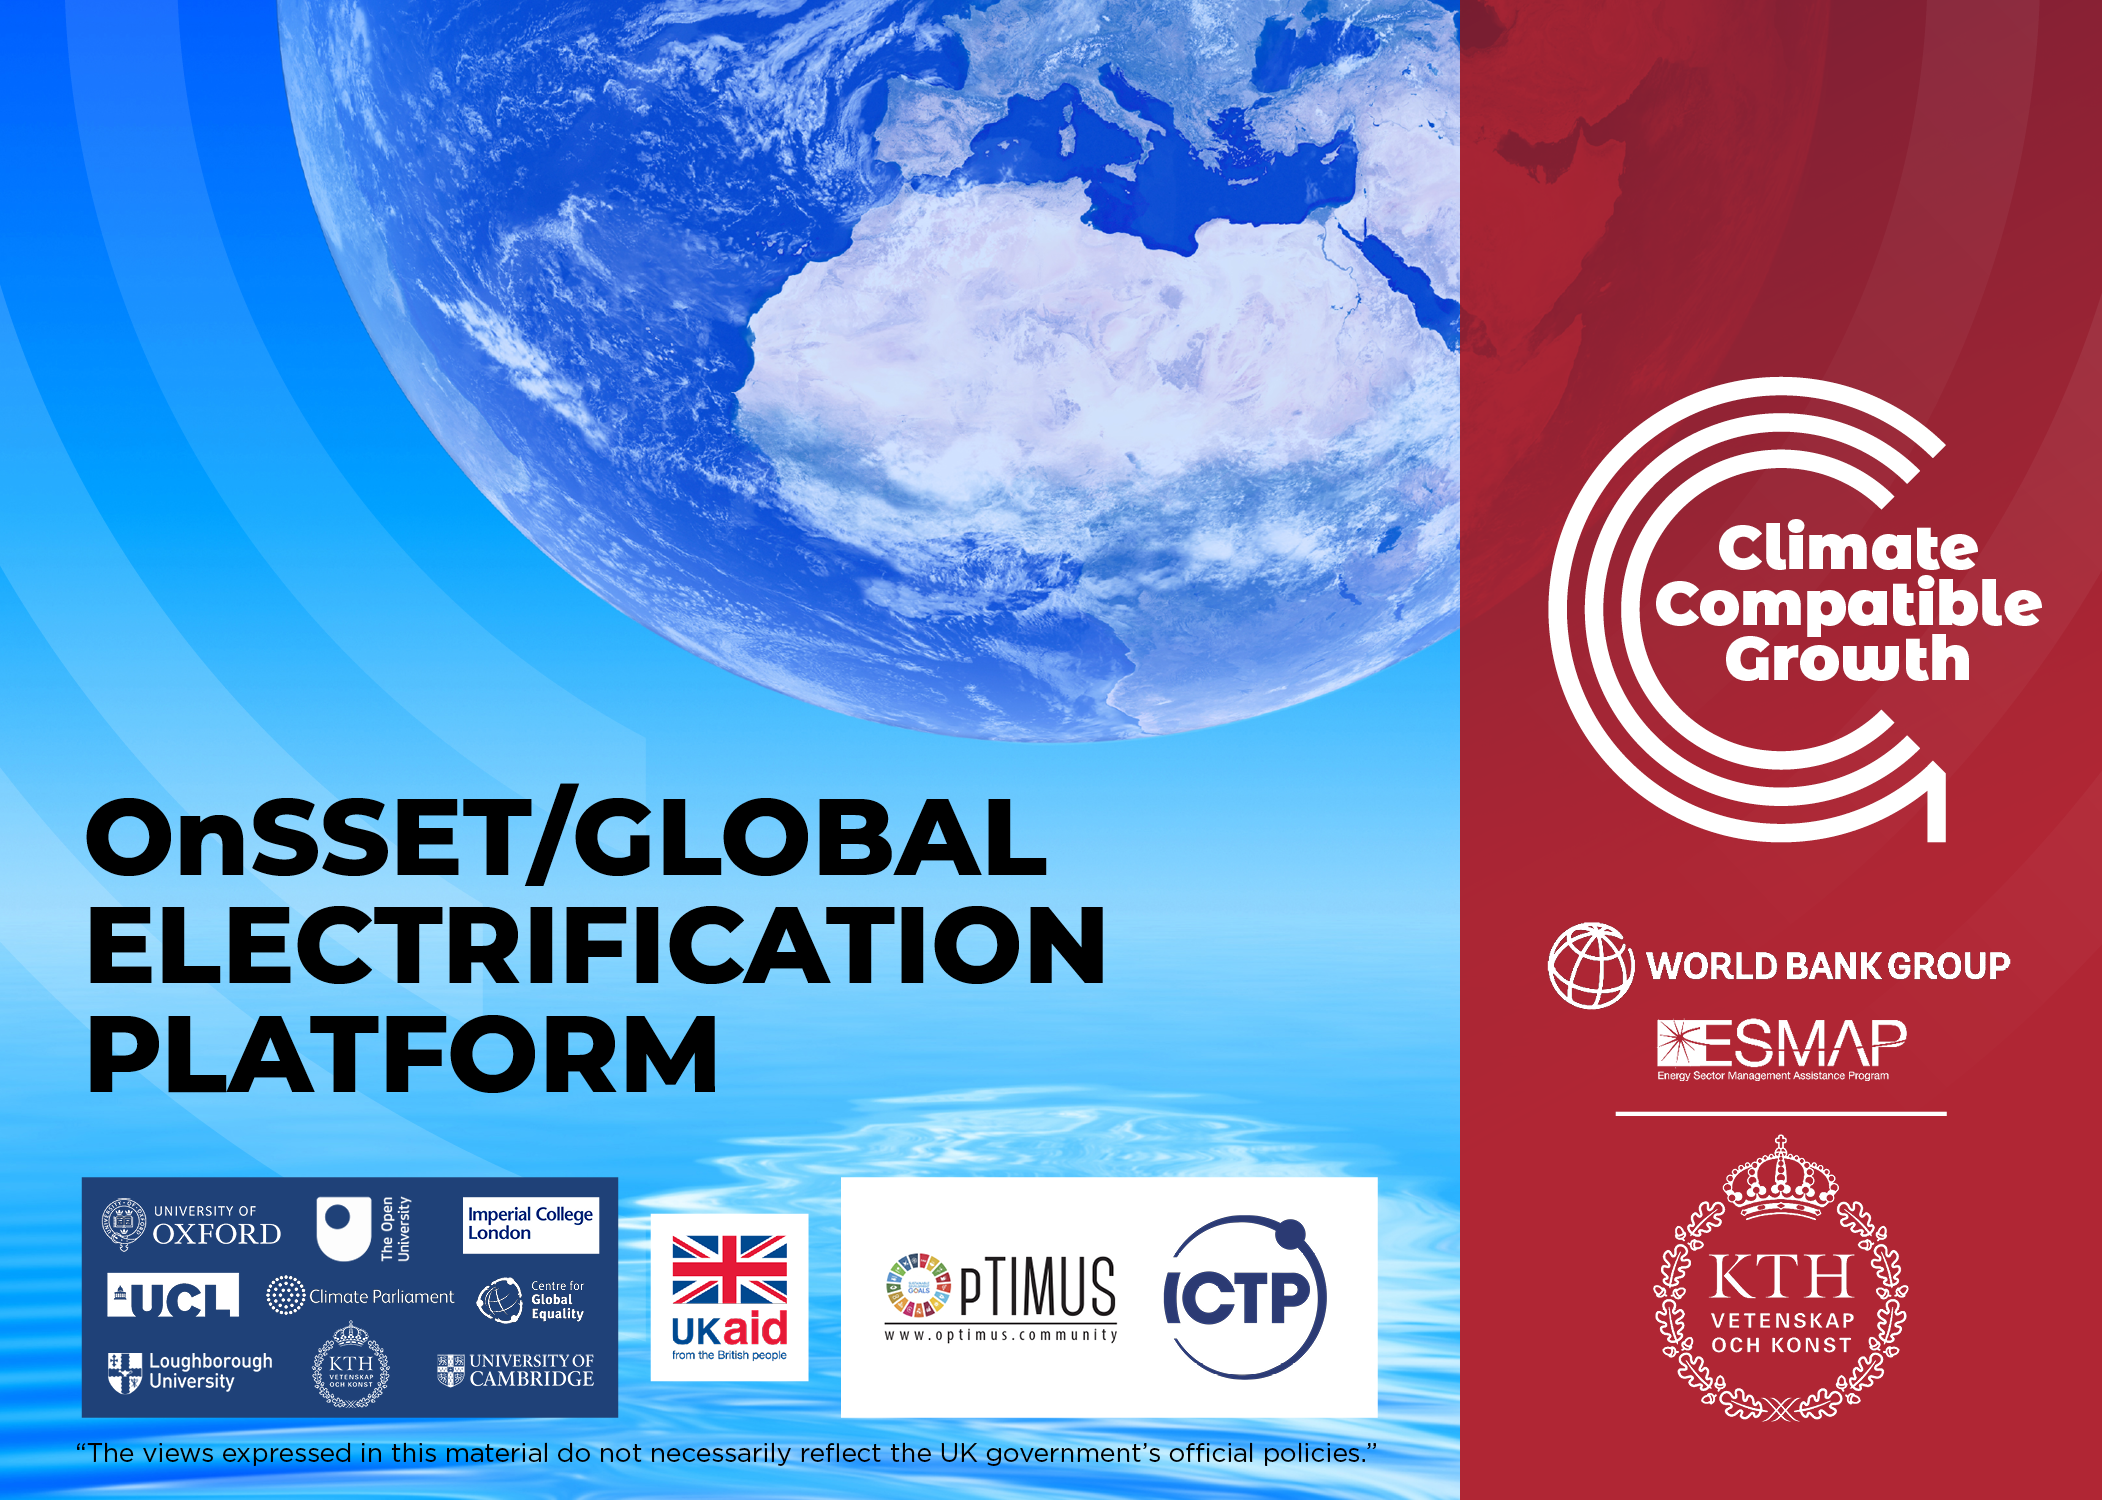 OnSSET/The Global Electrification Platform